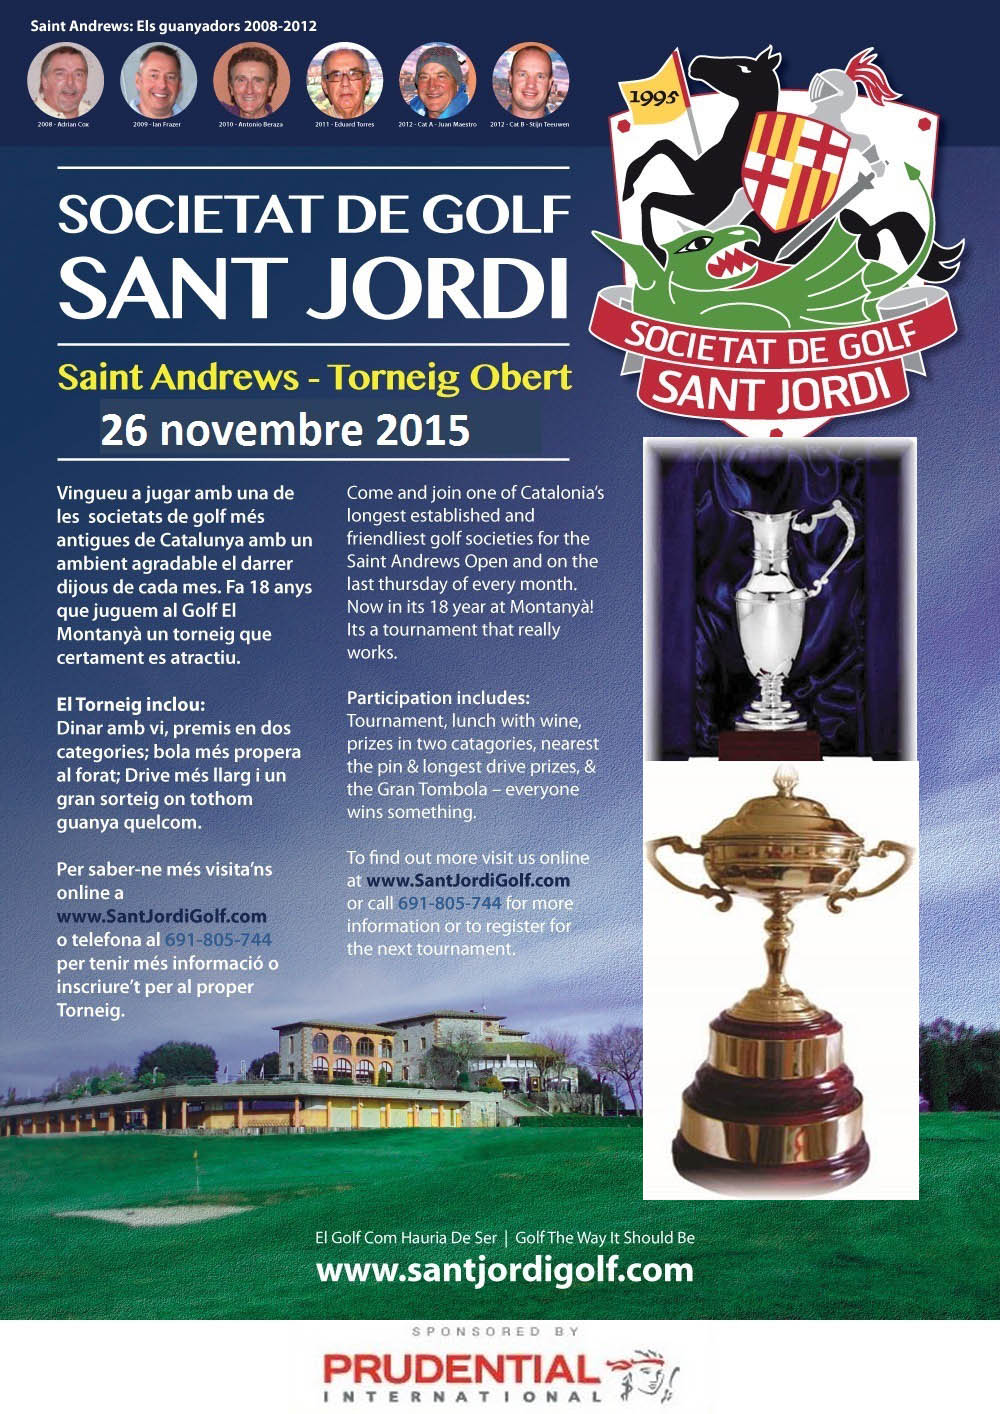 The Saint Andrews Open